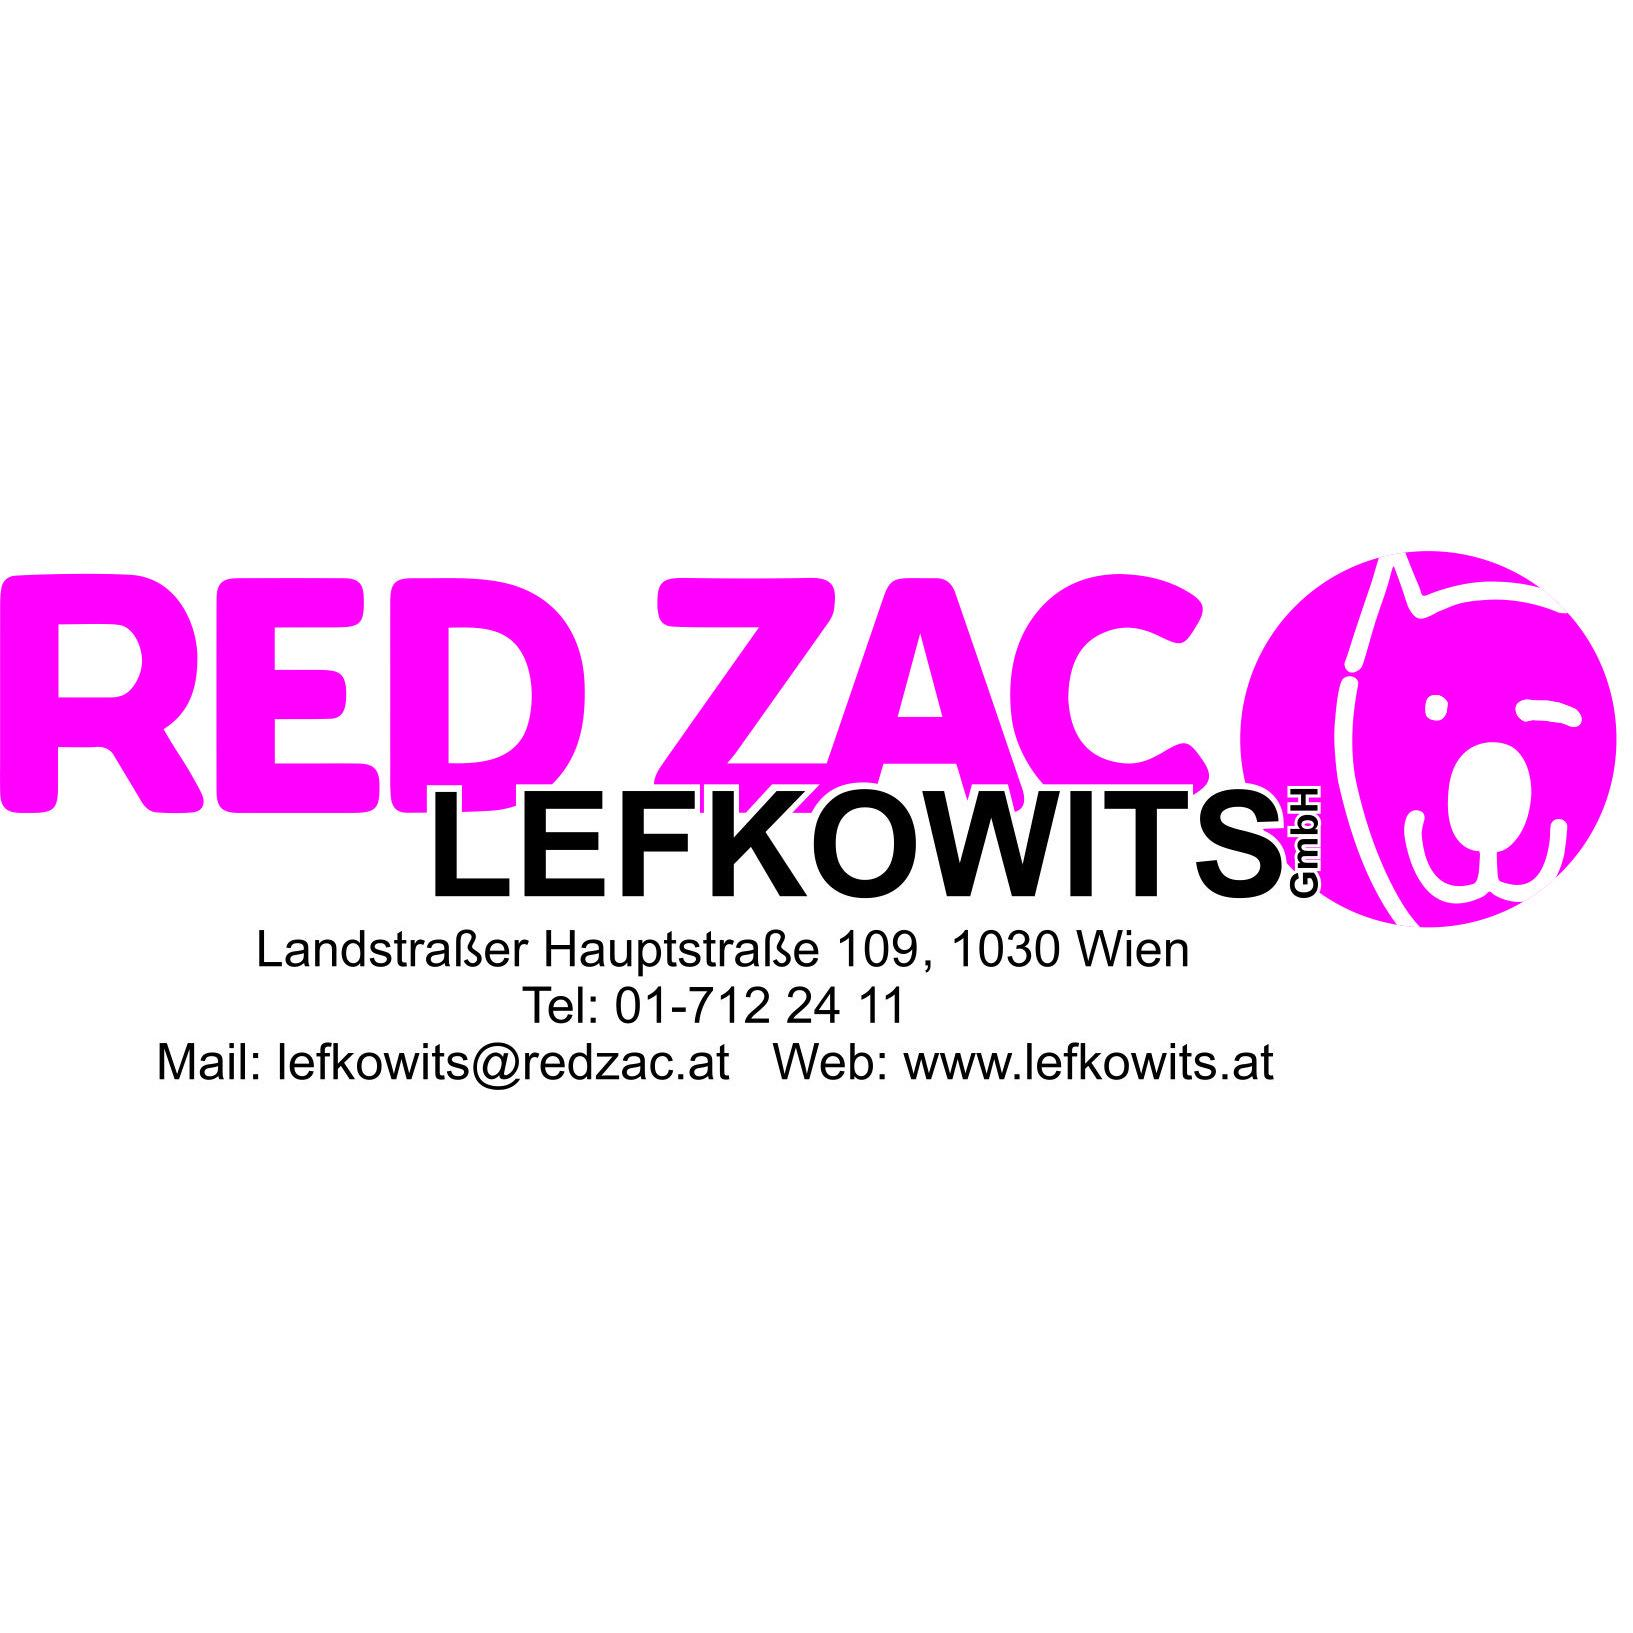 RED ZAC - Lefkowits GmbH